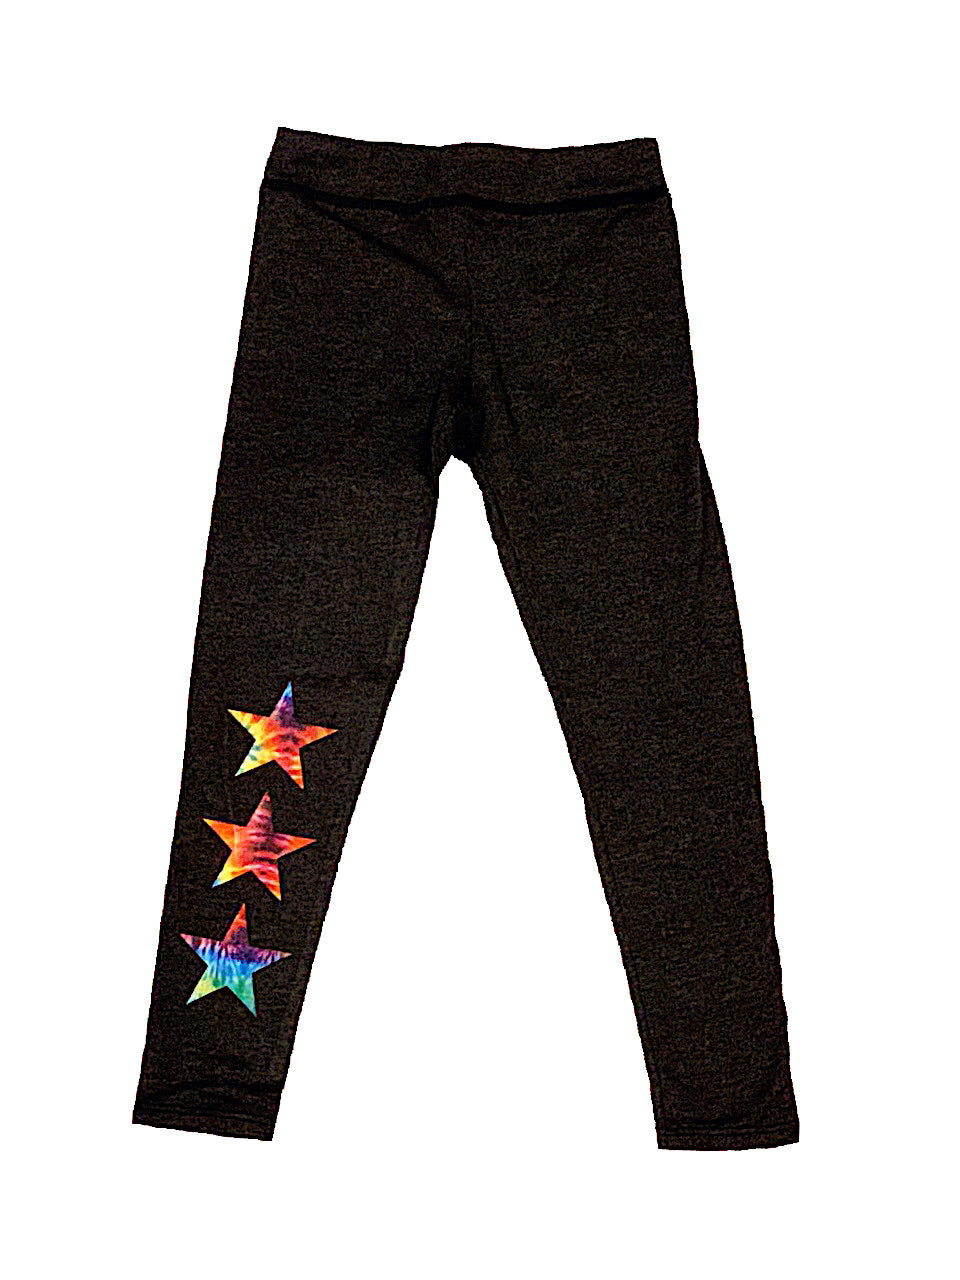 TIE DYE STAR CHARCOAL GREY LEGGING